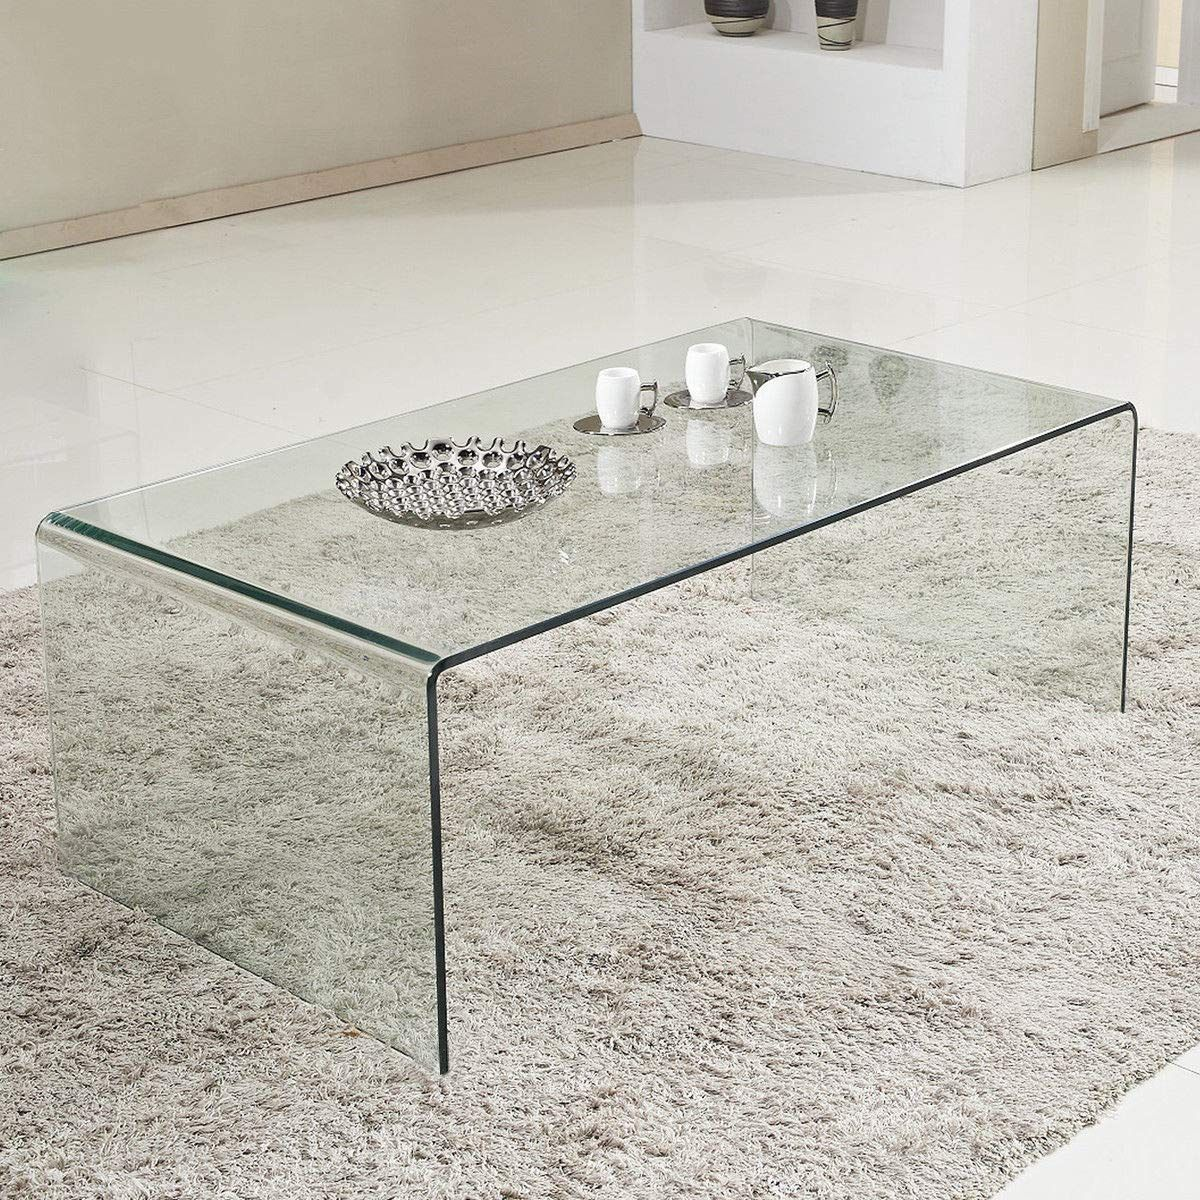 18 Expensive Looking Coffee Tables Under 200 That You Can Buy On Amazon In 2020 Glass Coffee Table Cool Coffee Tables Living Room Coffee Table [ 1200 x 1200 Pixel ]